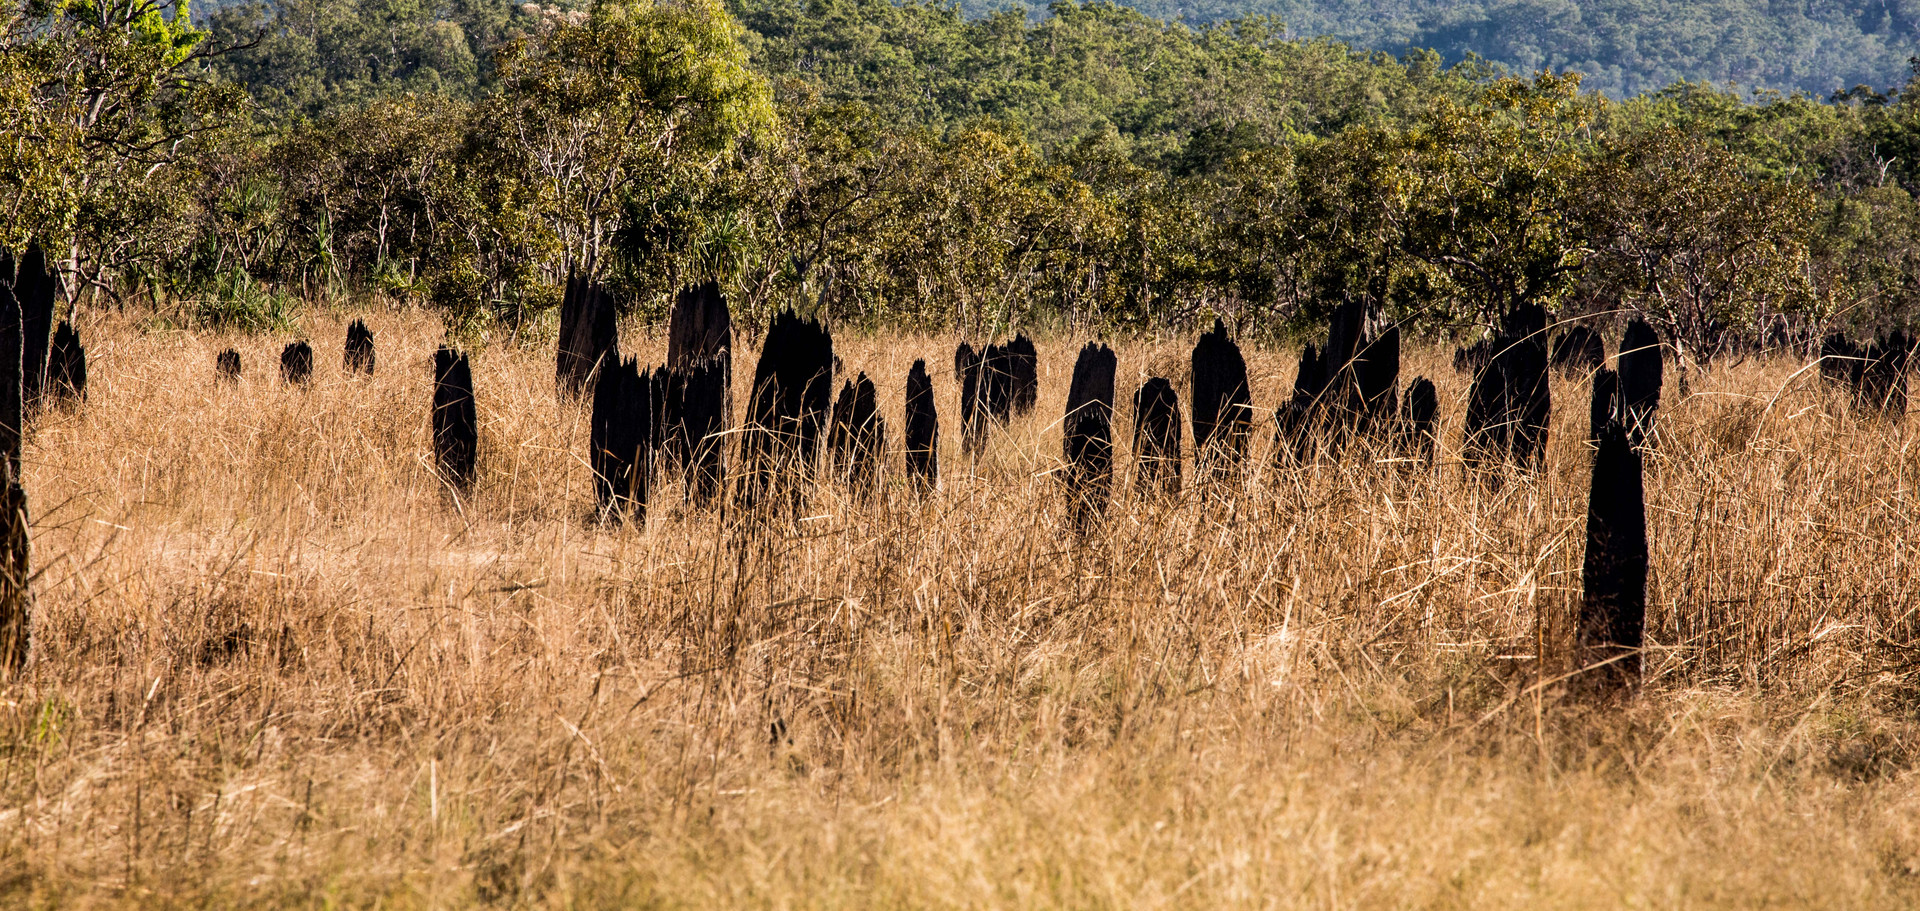 Termite Mounds, Litchfield National Park.